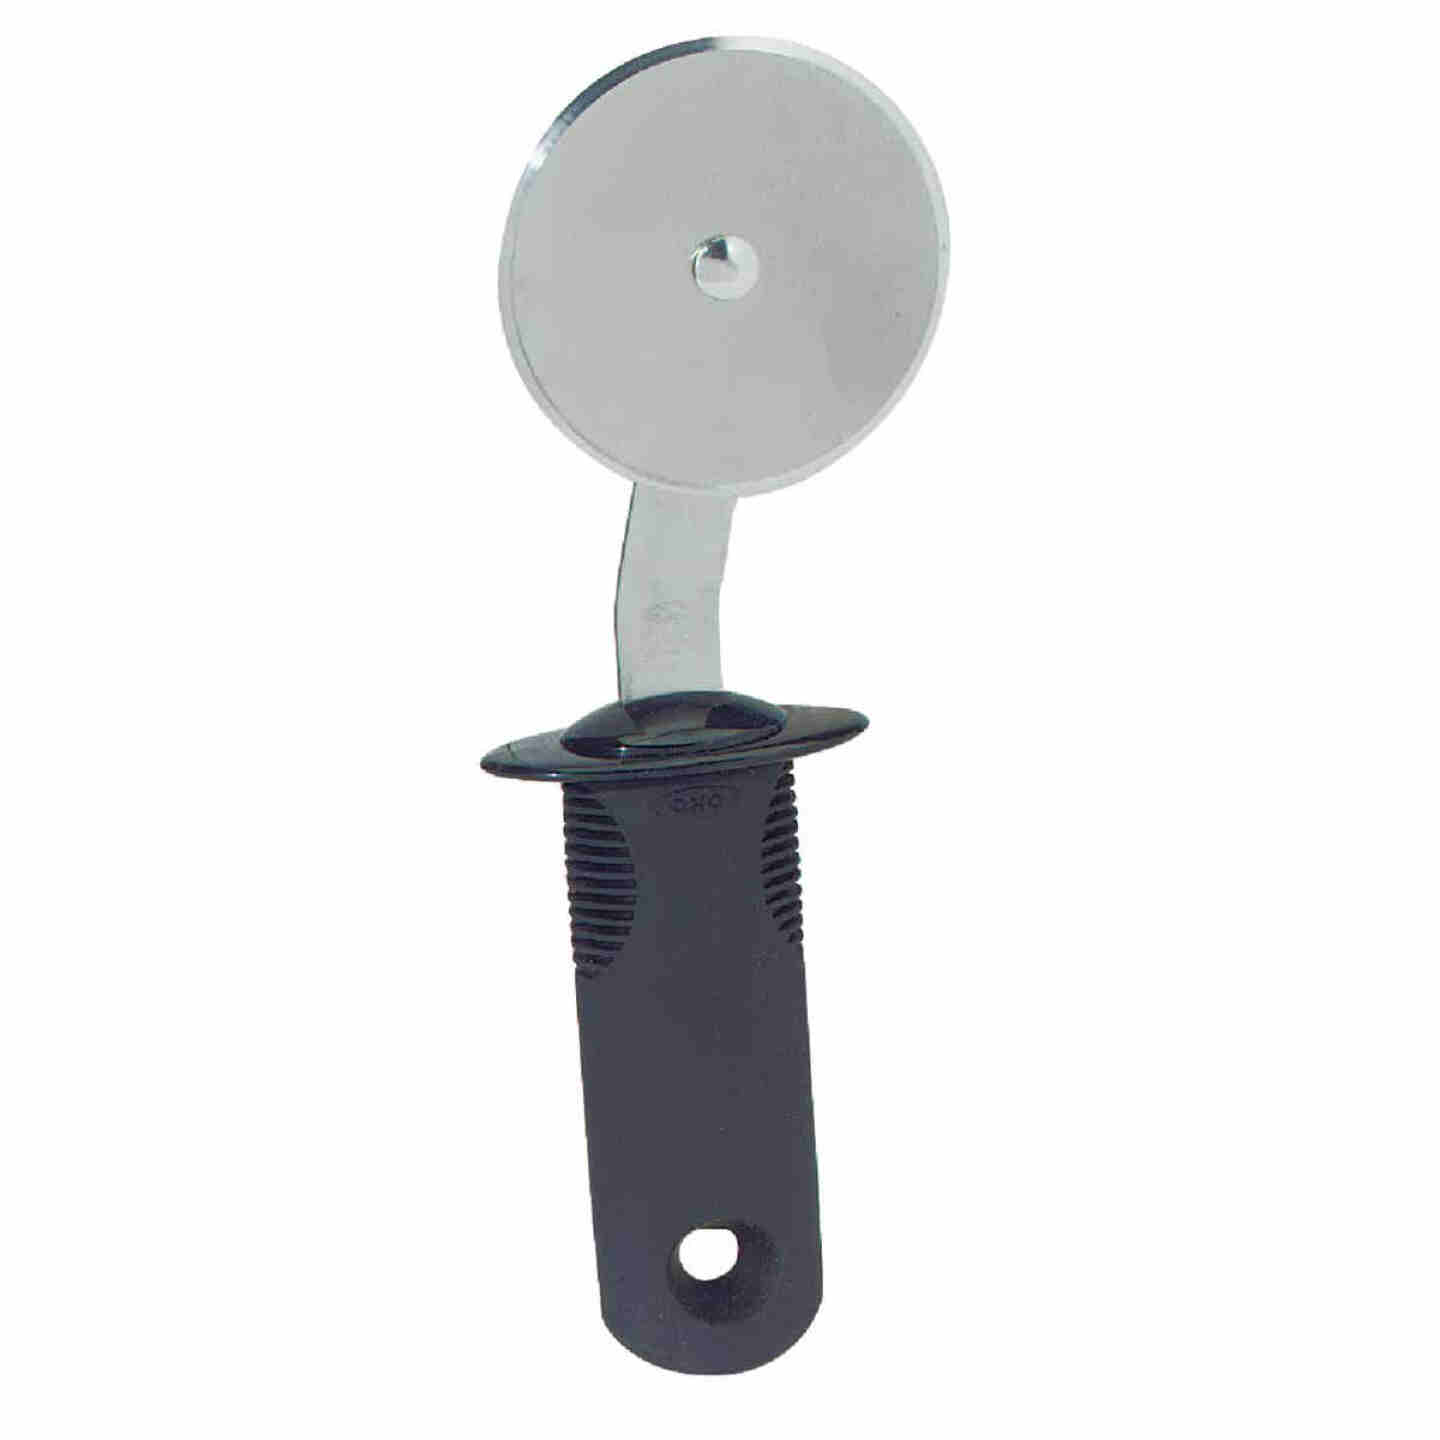 Oxo Good Grips 7 In. Pizza Cutter Image 1